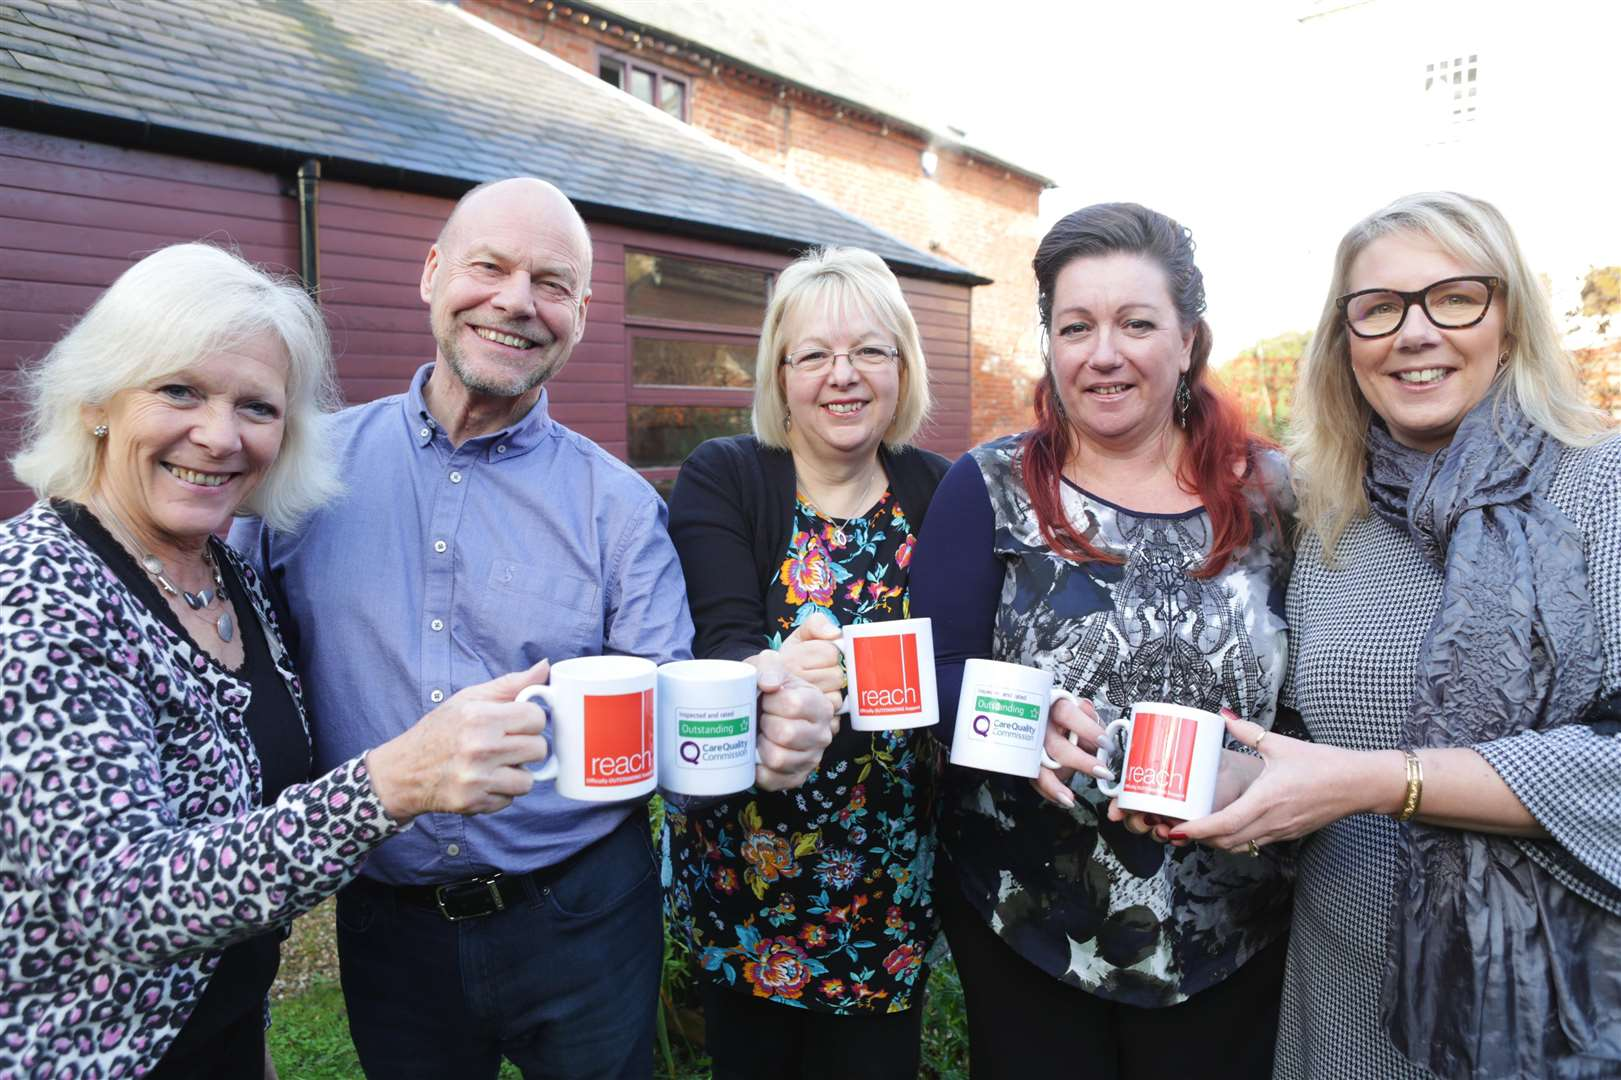 Celebrating an outstanding rating for Reach Learning Disability Care are lef to right care coordinator Sandra Dickinson, chief executive Steve Shatwell, deputy care manager Jayne Dobbs, senior administrative officer Dawn Moore and registered care manager Dani Noquet. (6135441)